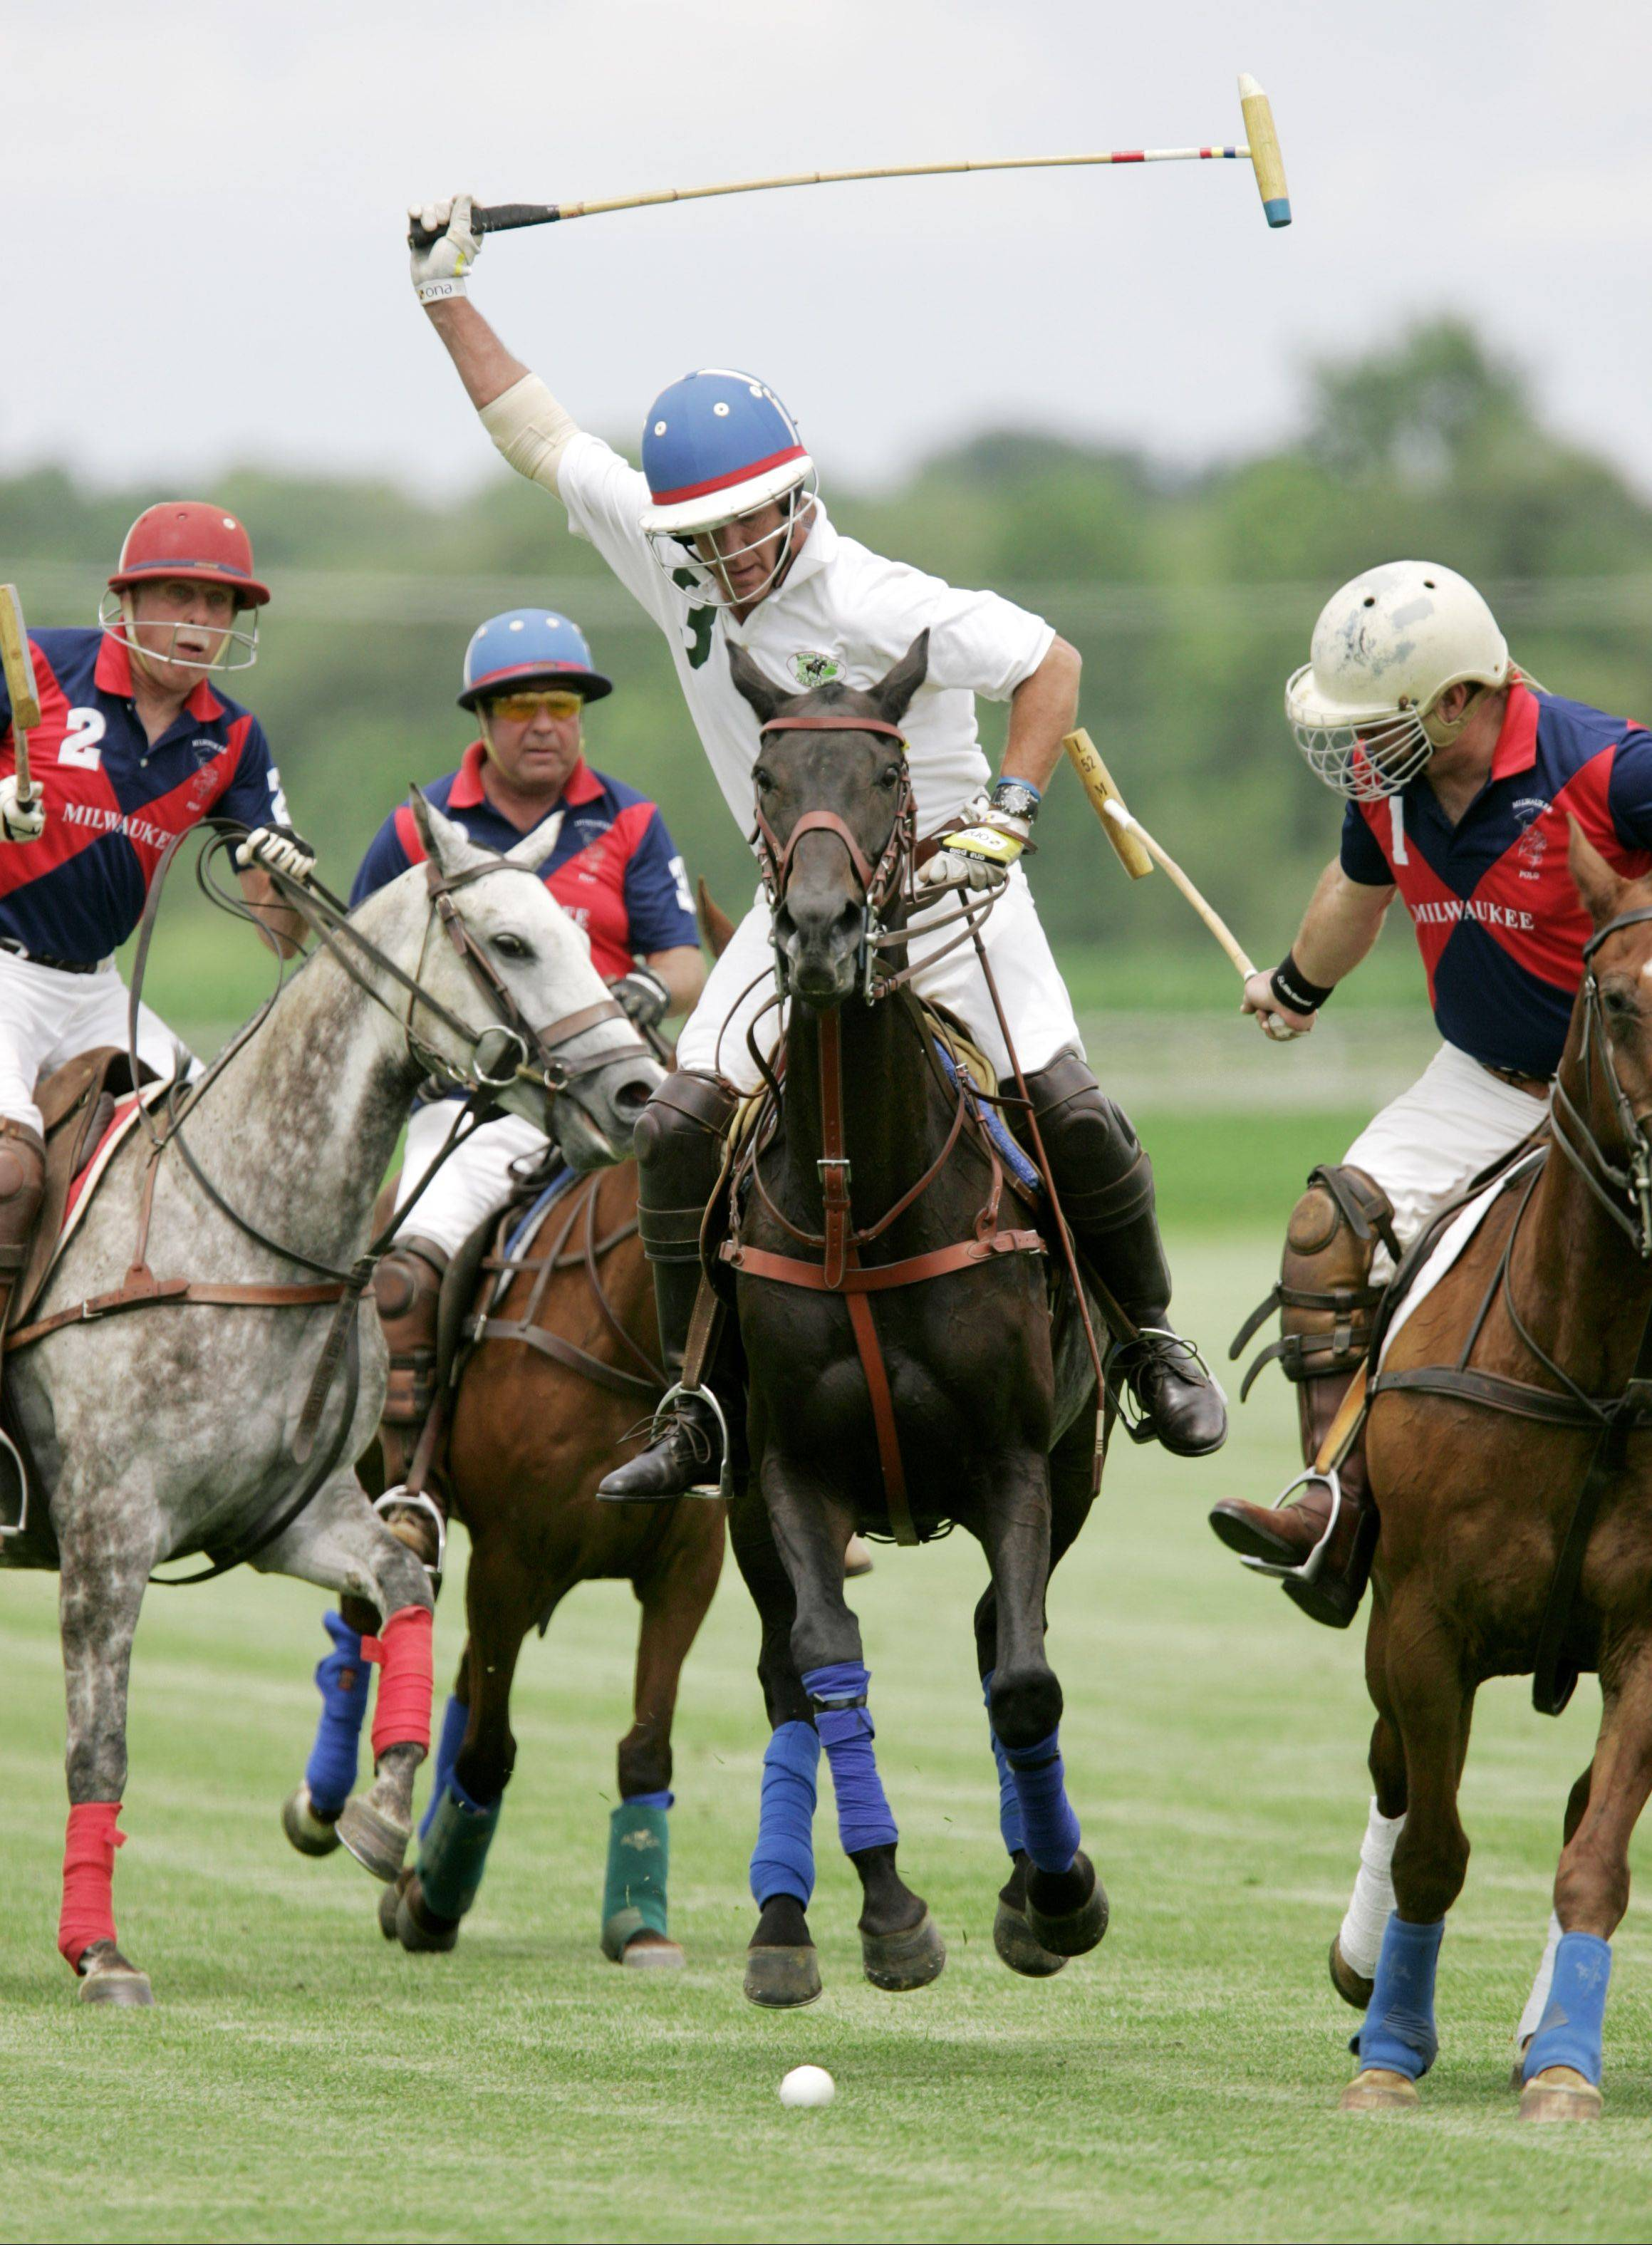 This year's polo tournament at Blackberry Polo Field Sunday, July 17, will feature teams from around the county.